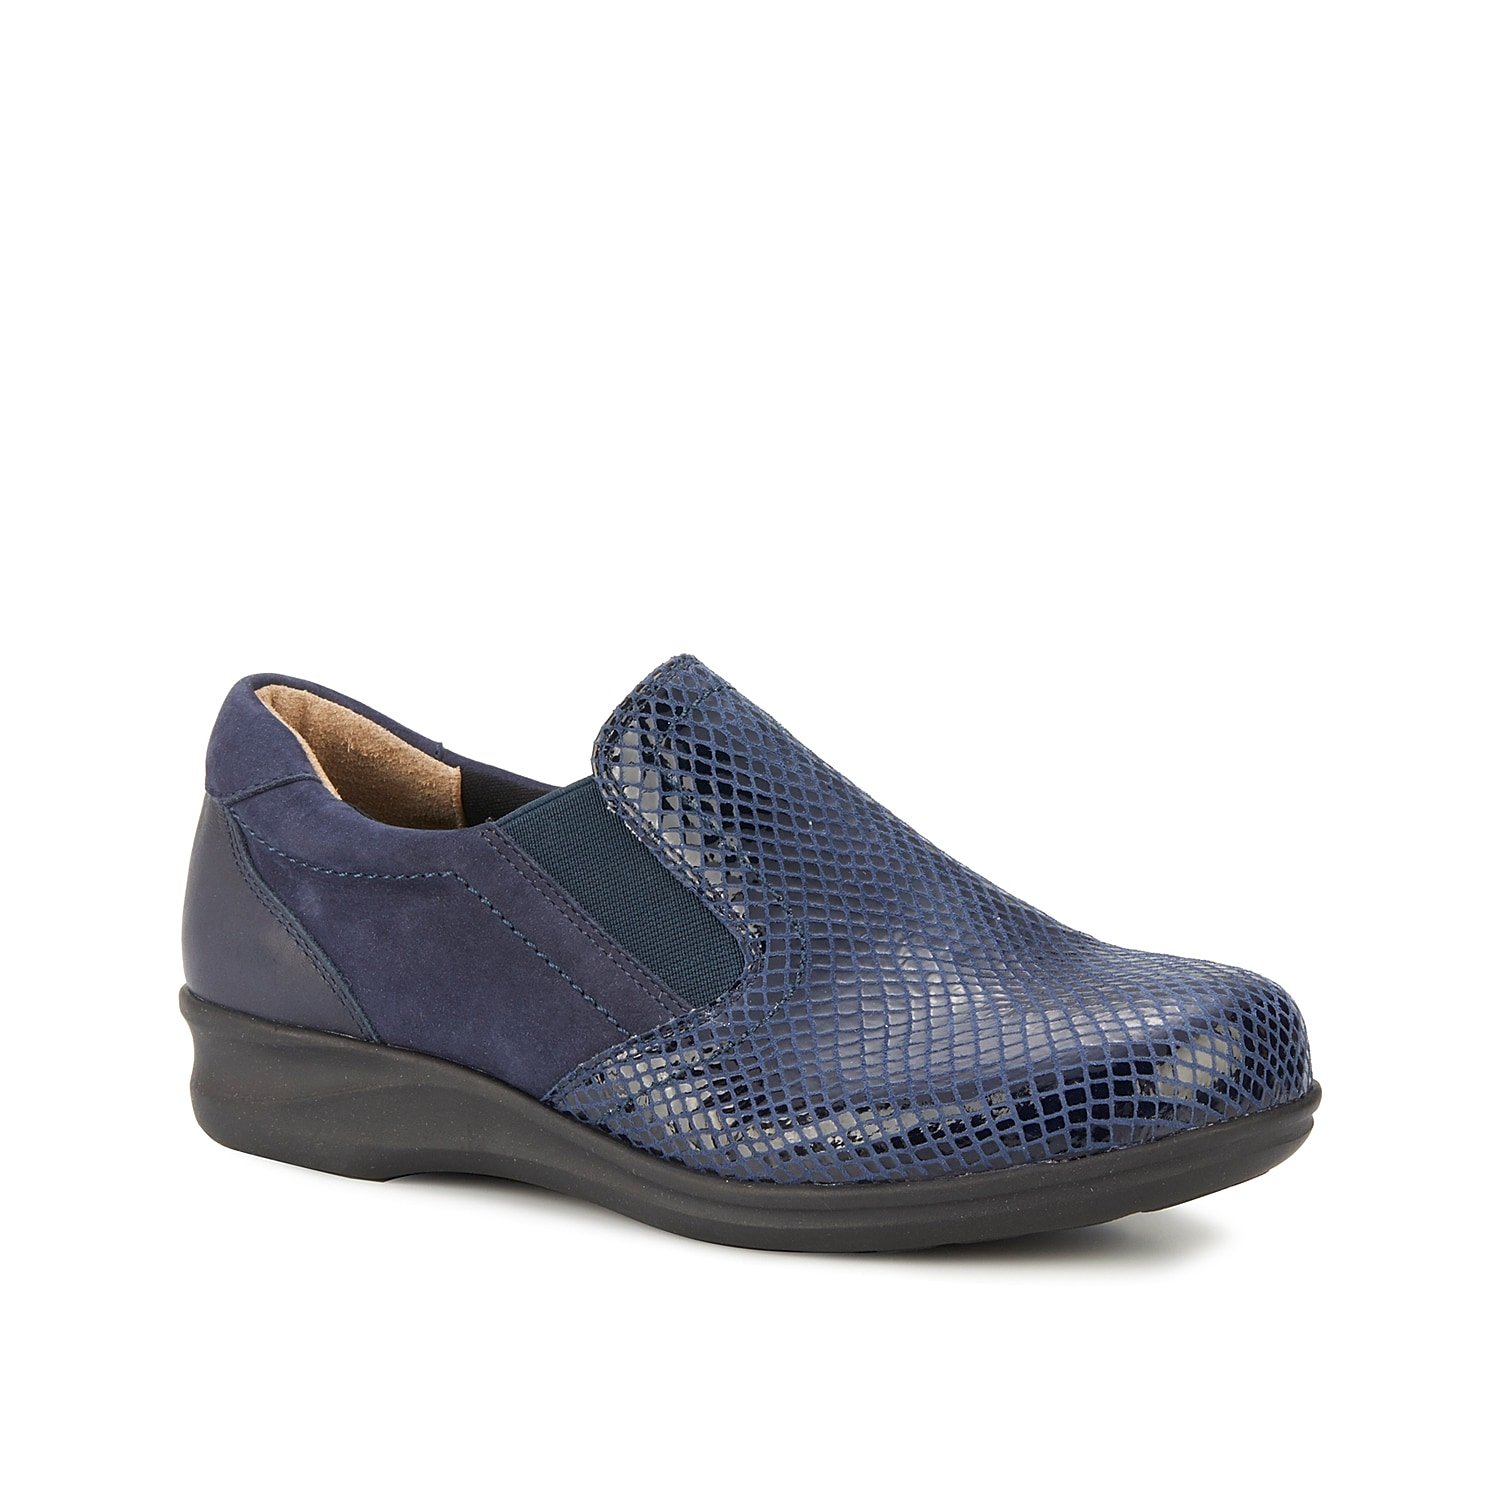 Stay supported anywhere you go with the Eamon slip-on from Walking Cradles. This leather pair features a Tiny Pillows footbed to cushion every step.